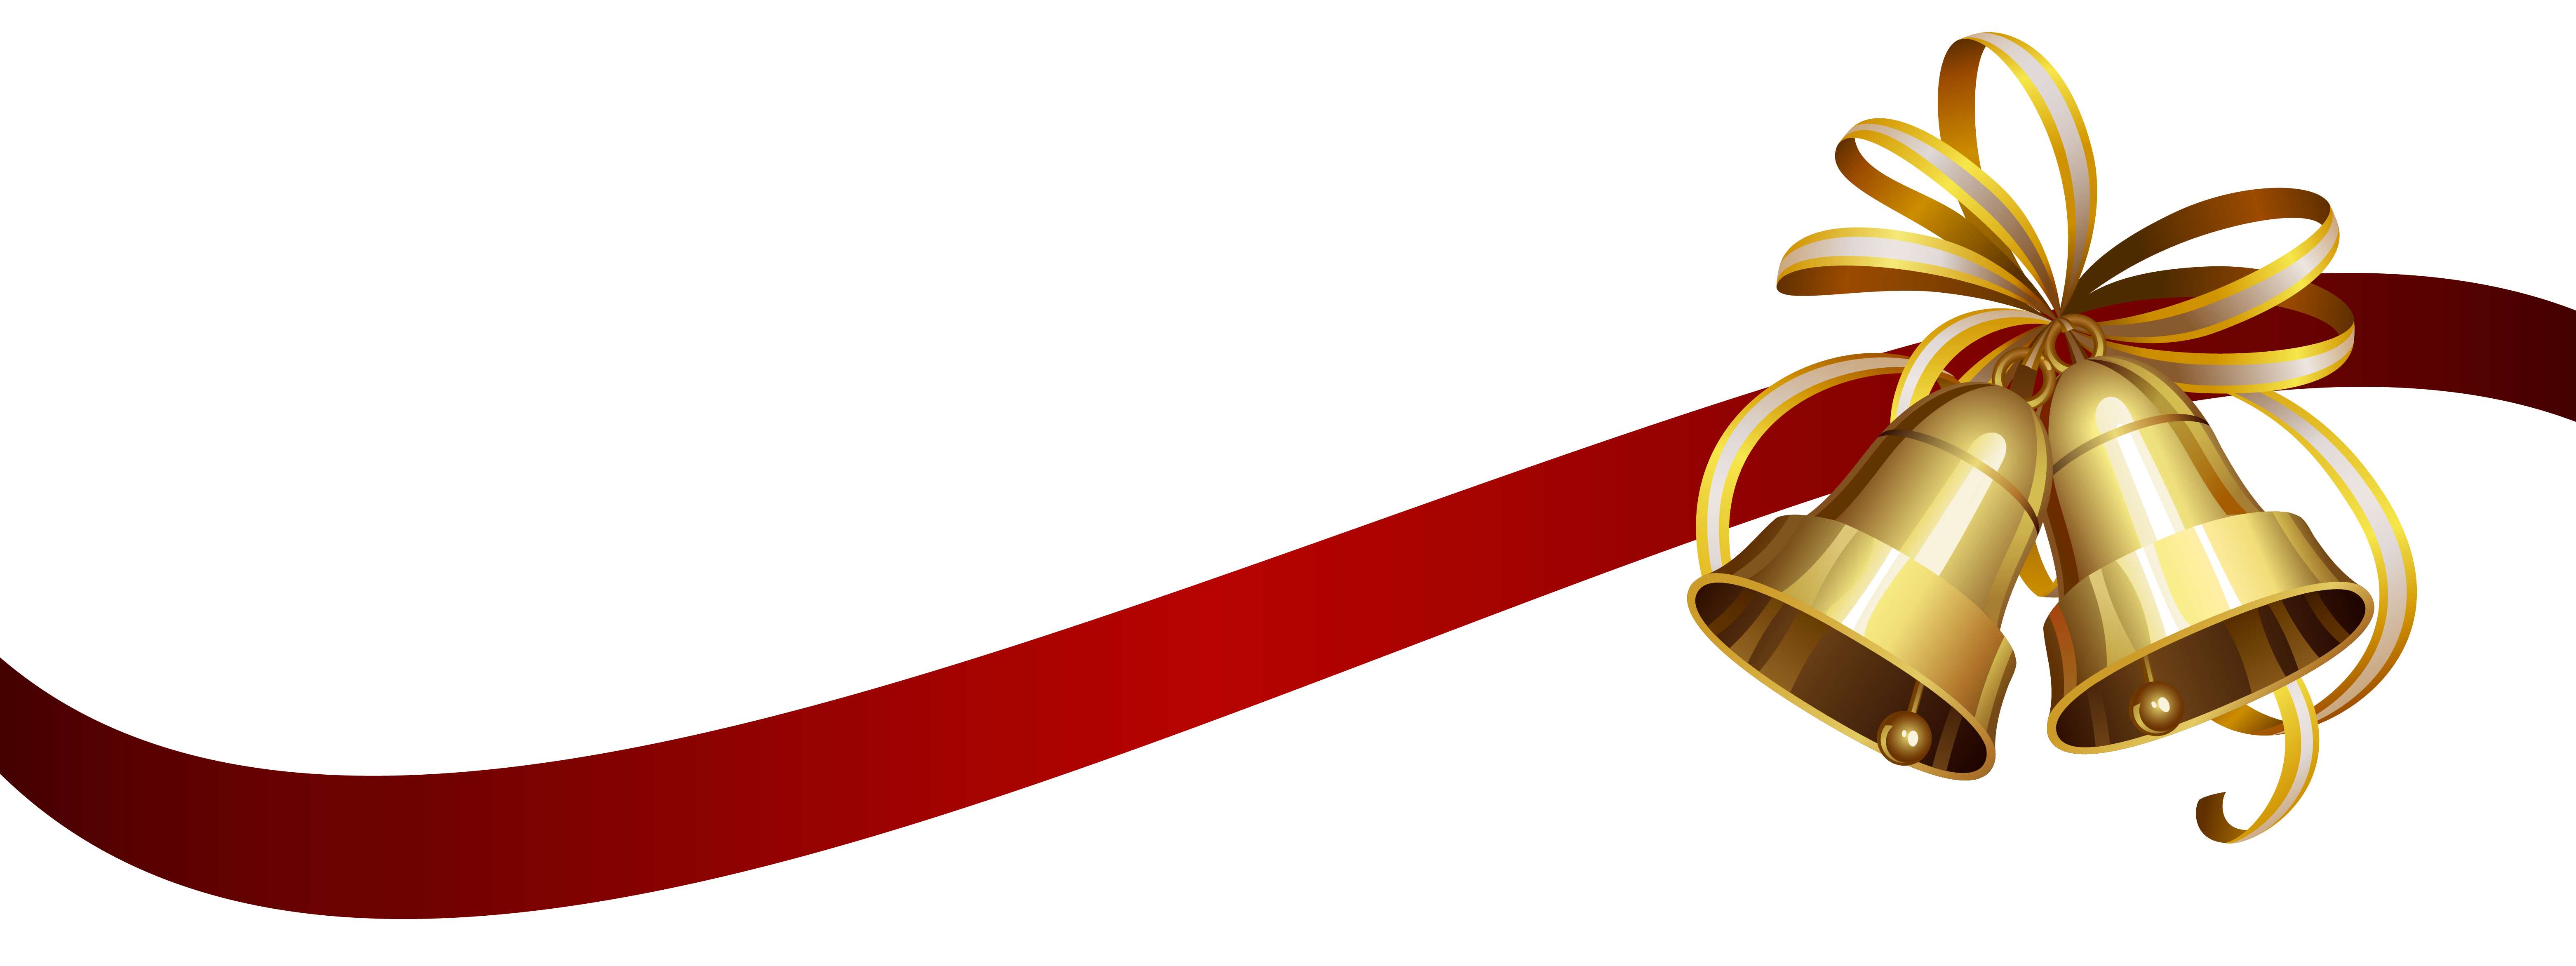 Christmas_Bells_with_Ribbon_Transparent_PNG_Clip_Art_Image